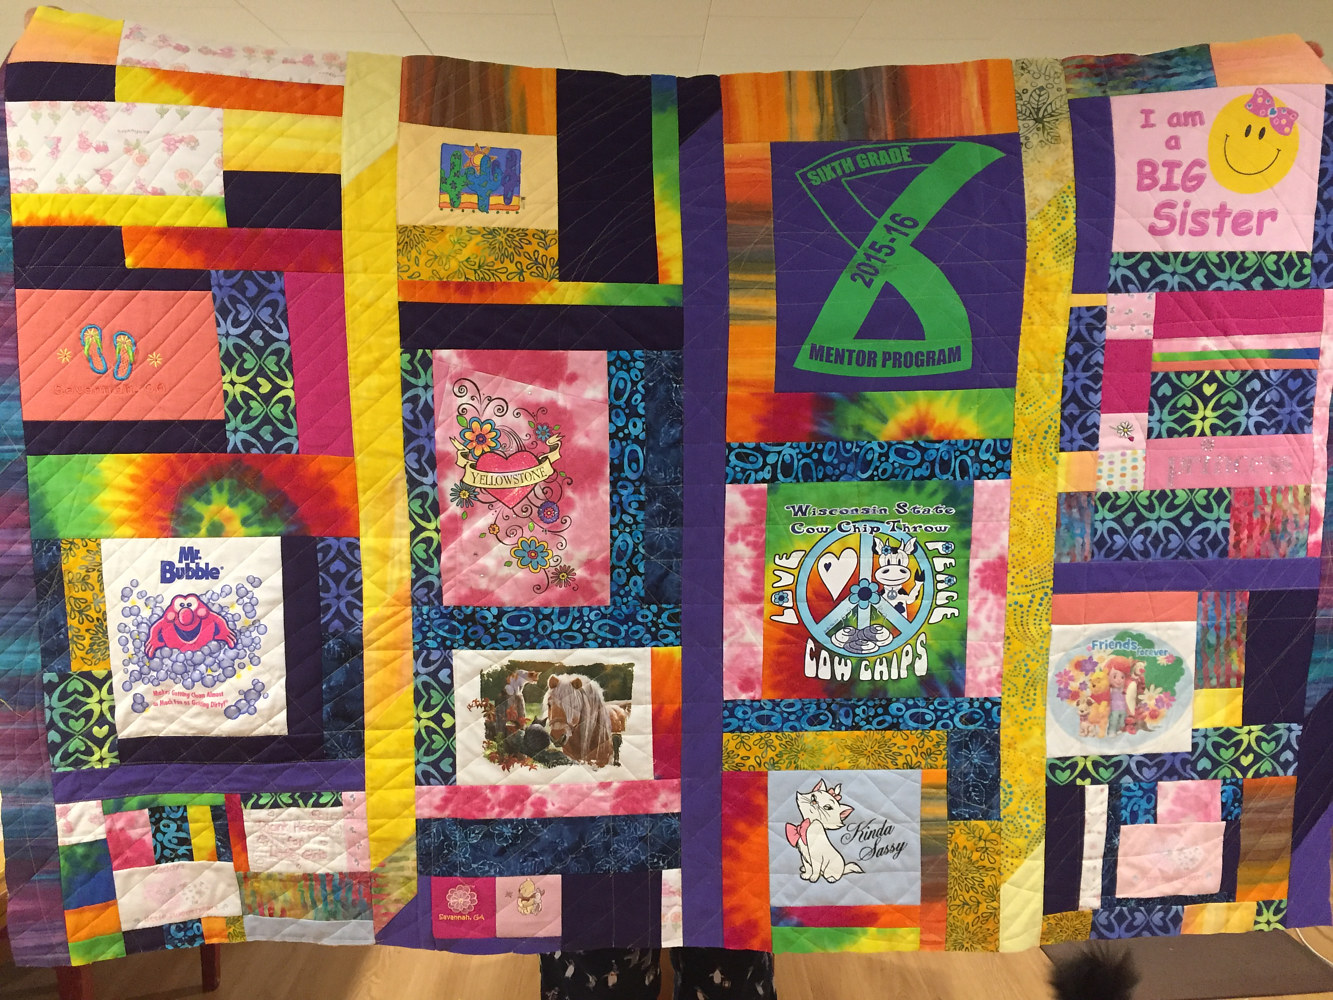 Upcycled clothing quilt, from mom to daughter, April 2017 by Maday Delgado